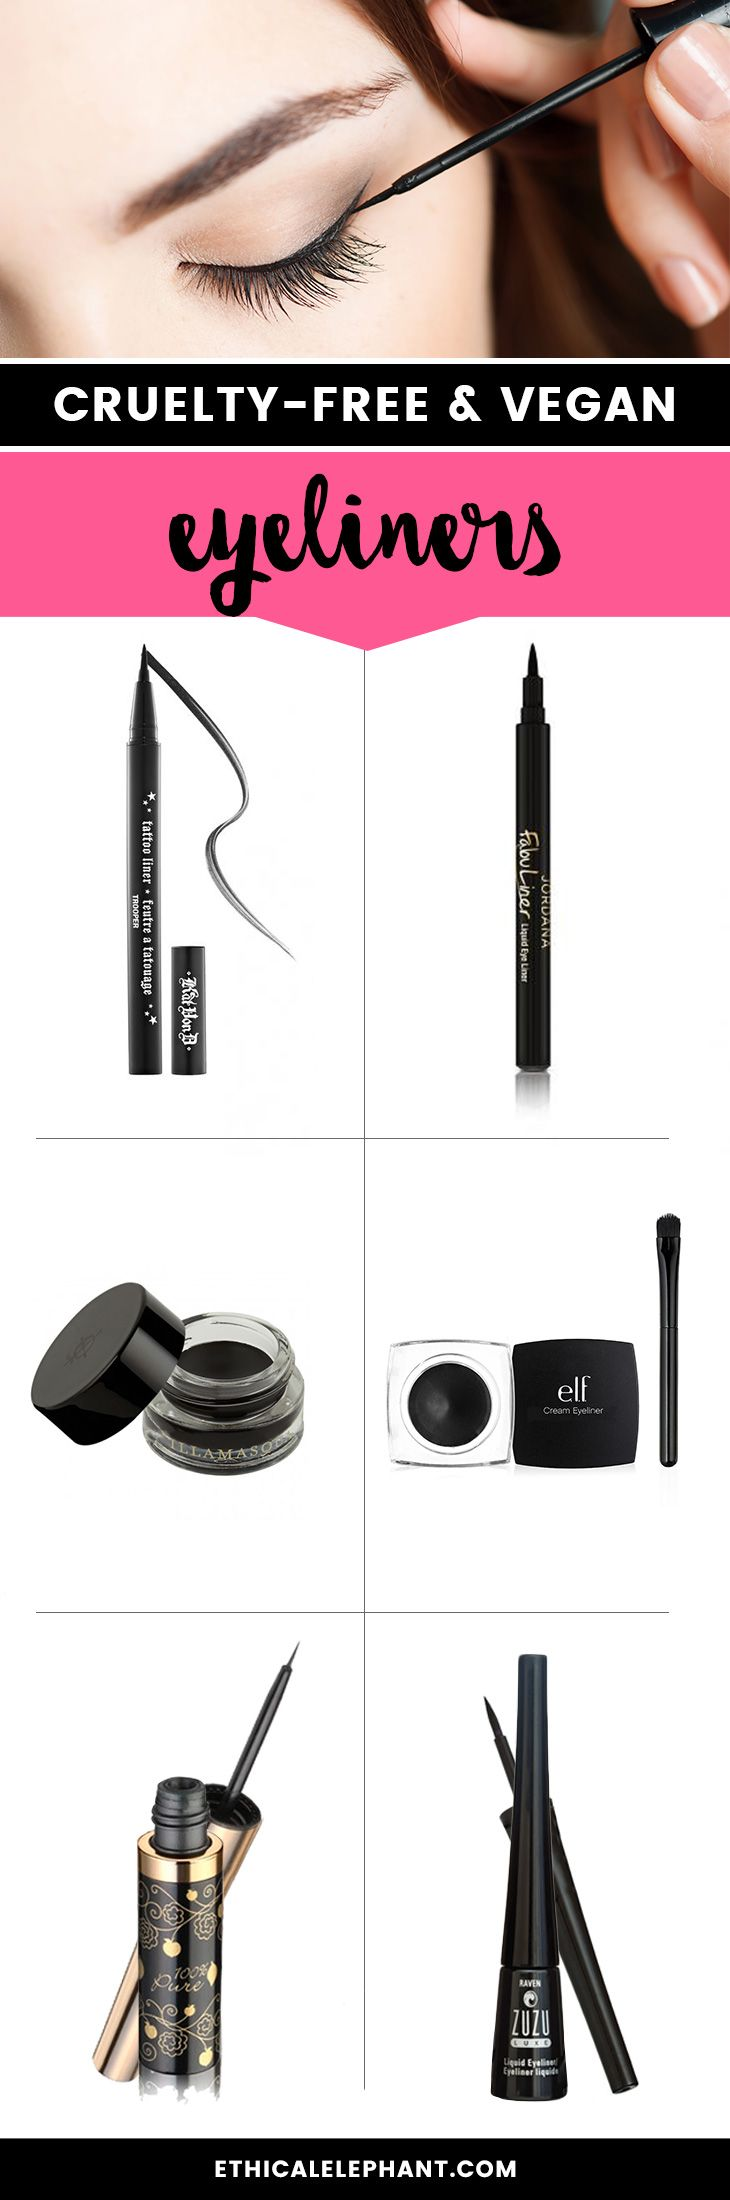 Eyeliners that are not tested on animals or contain any animal-derived ingredients like beeswax!